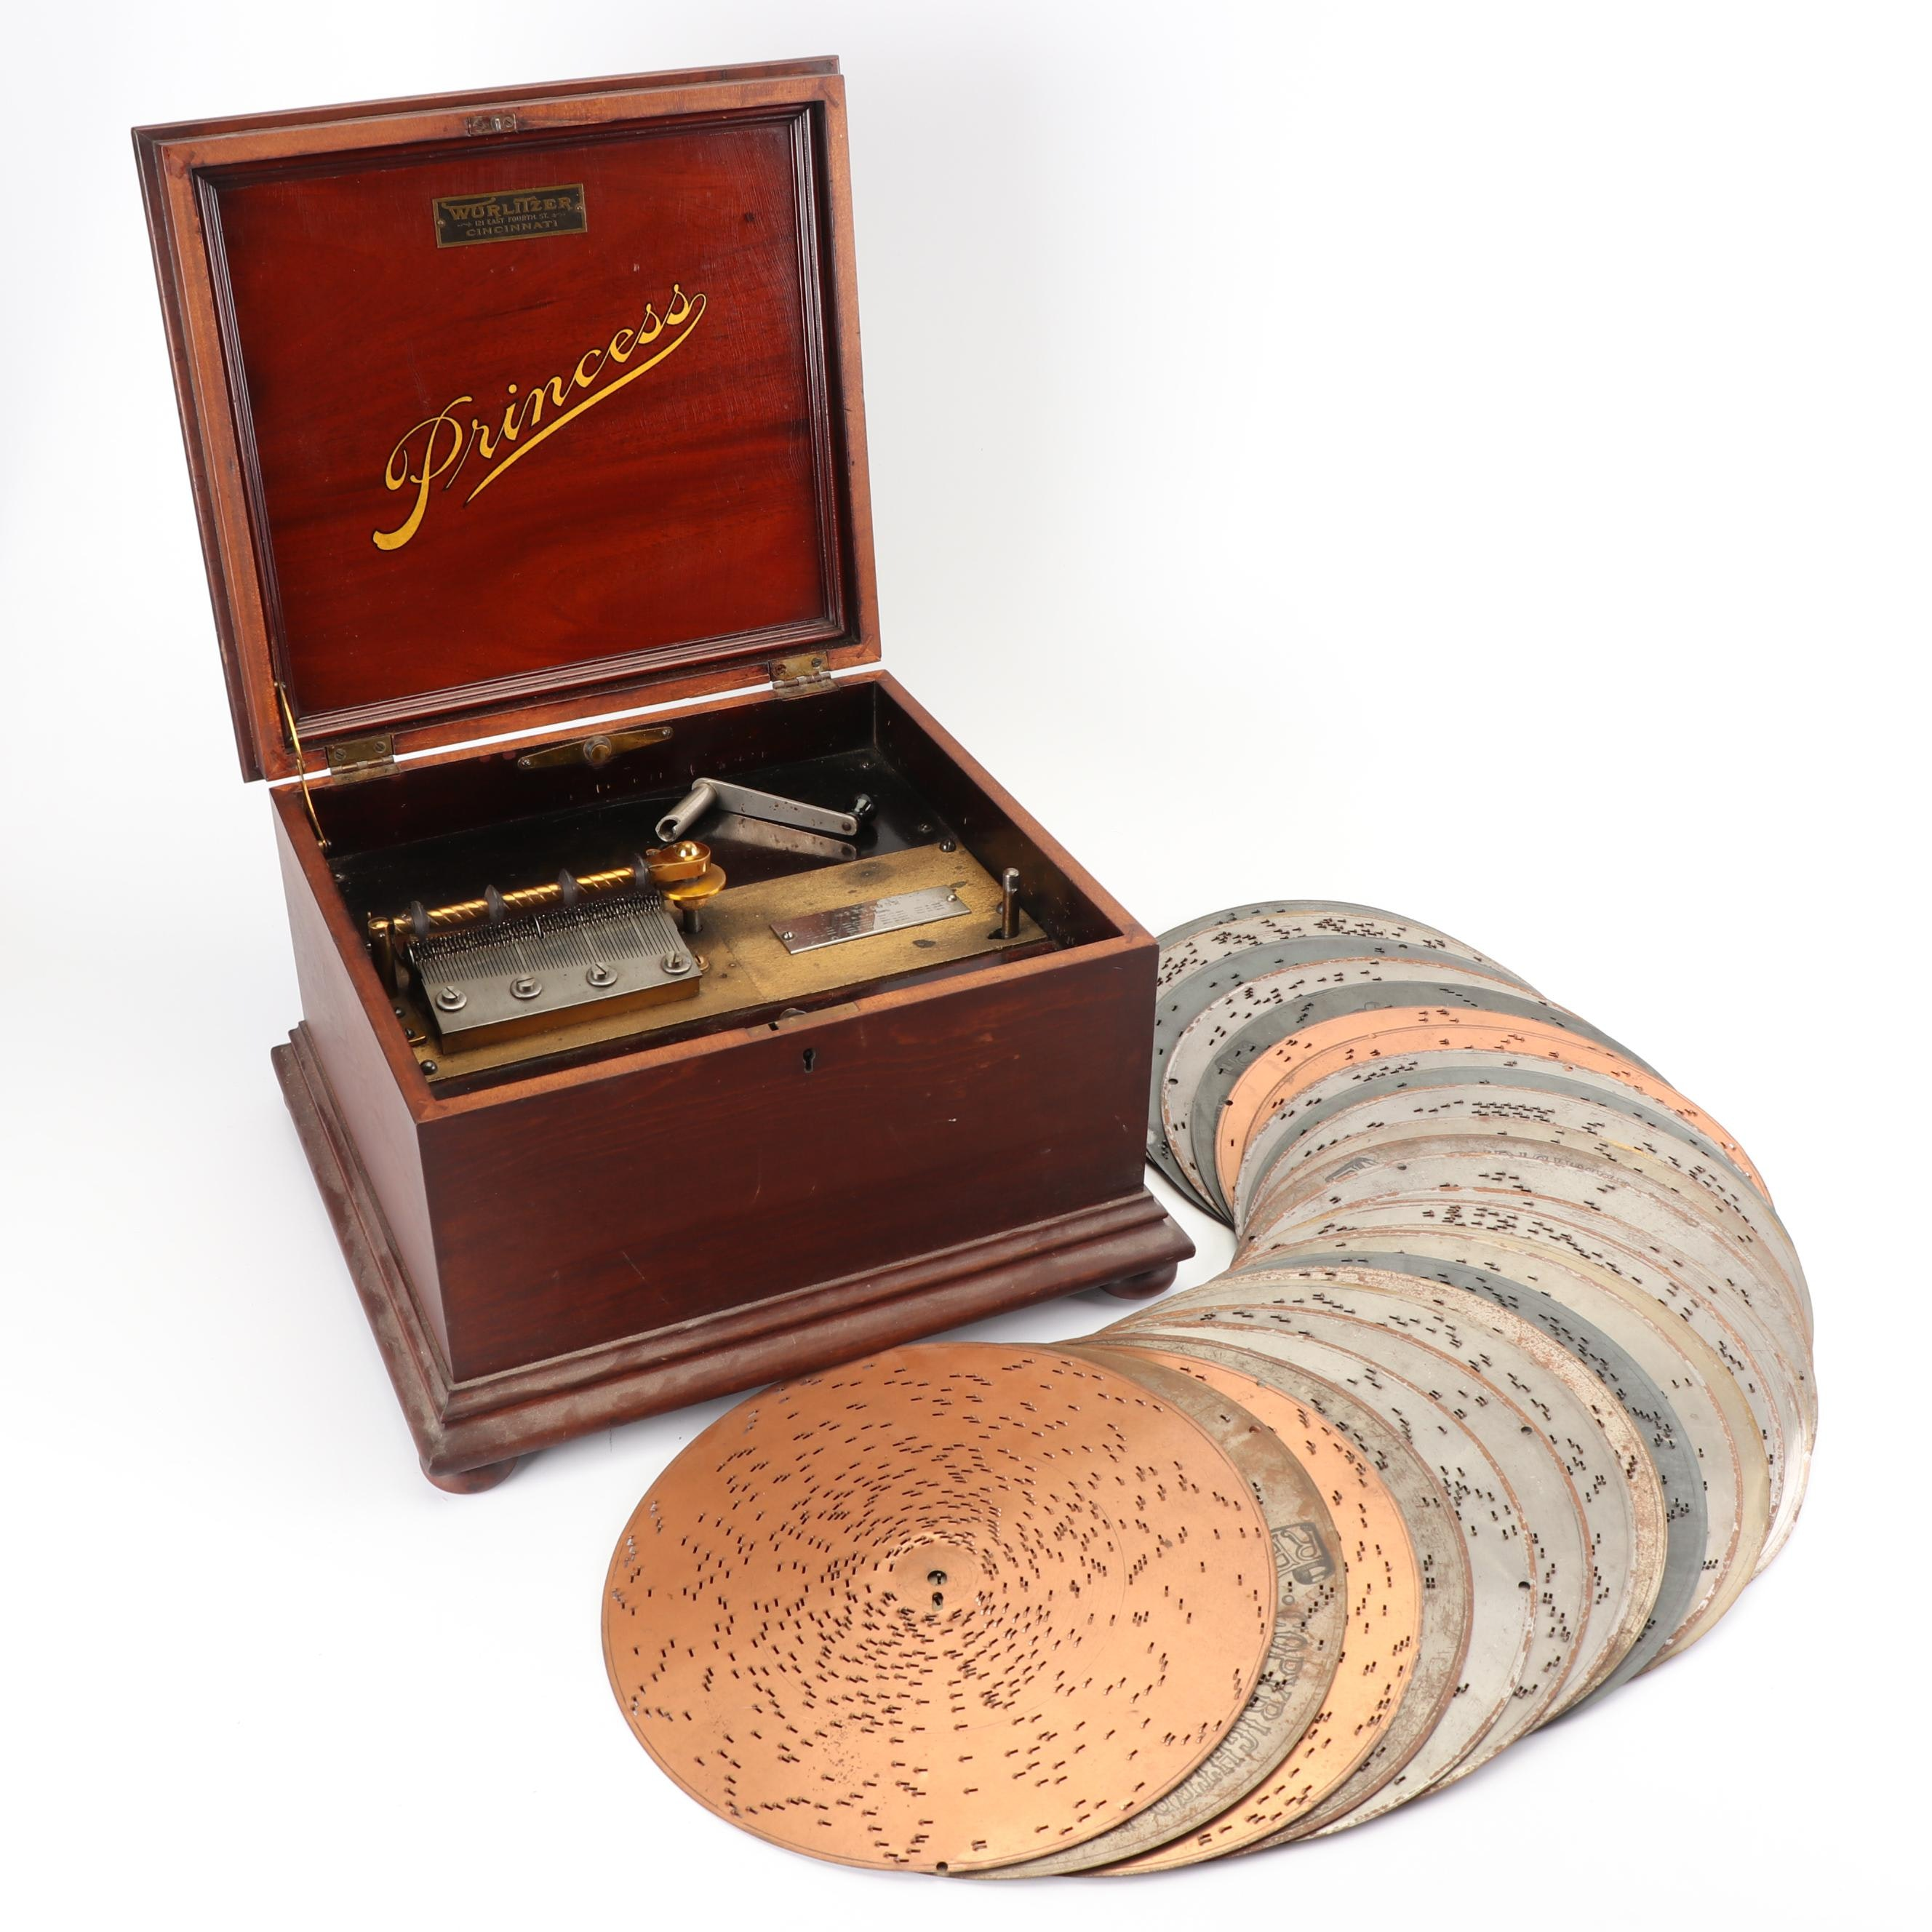 Wurlitzer Princess Music Box with Discs, Late 19th/ Early 20th Century